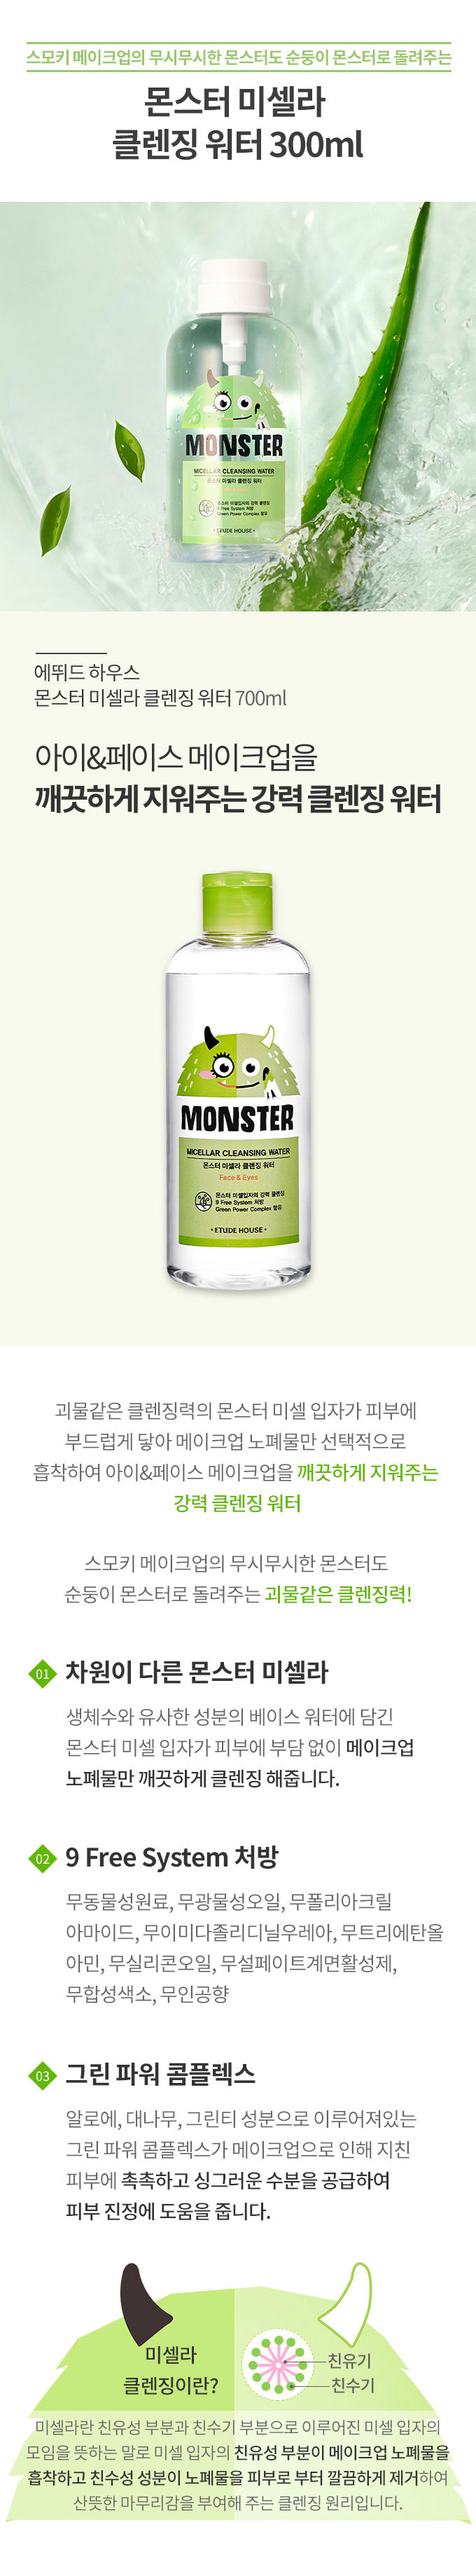 [ETUDE HOUSE] MONSTER MICELLAR CLEANSING WATER